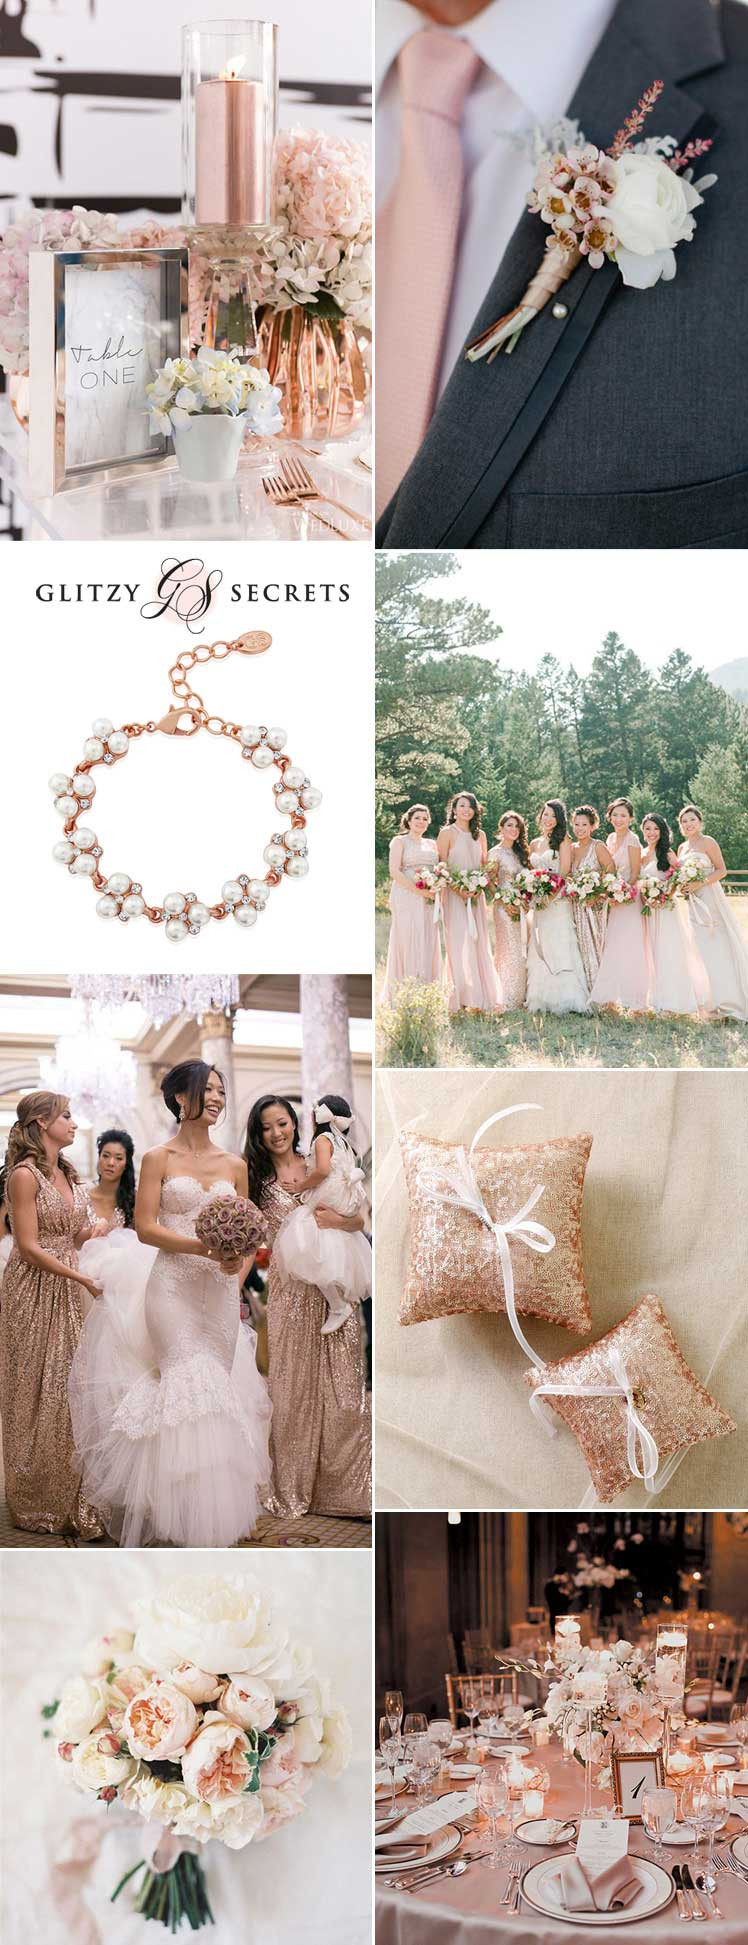 fabulous blush and rose gold wedding inspiration